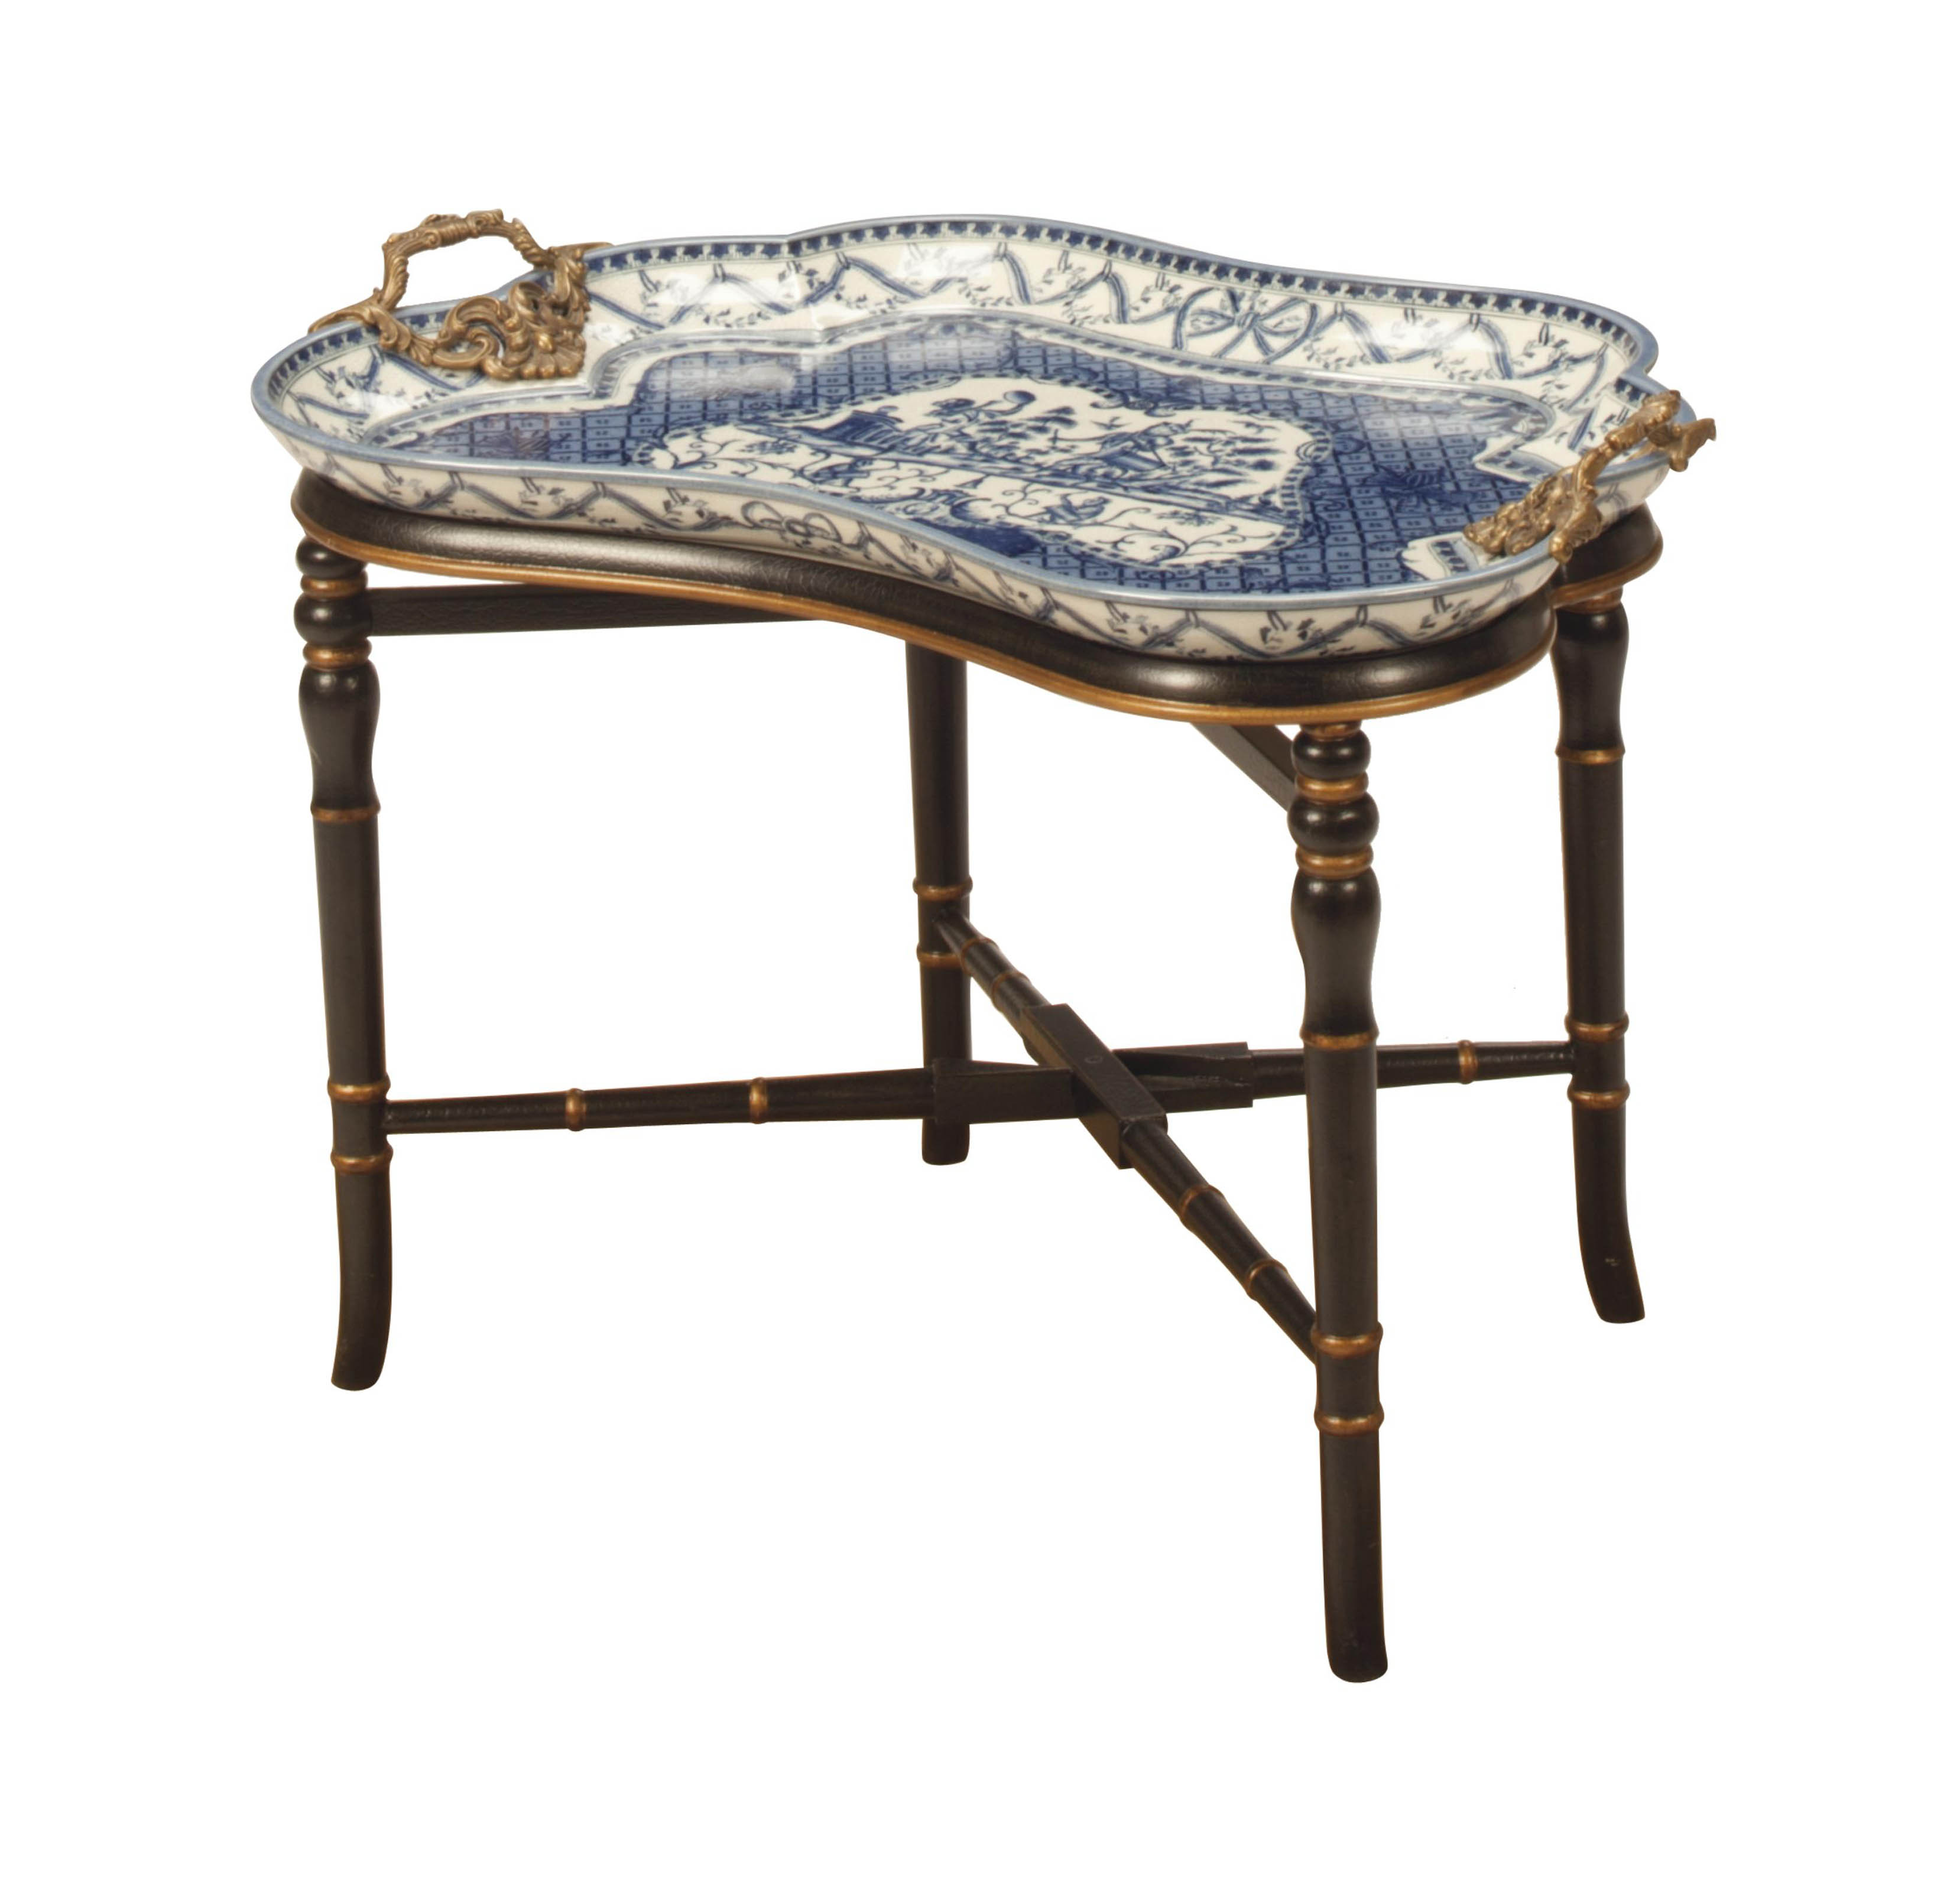 A GILT-METAL-MOUNTED BLUE AND